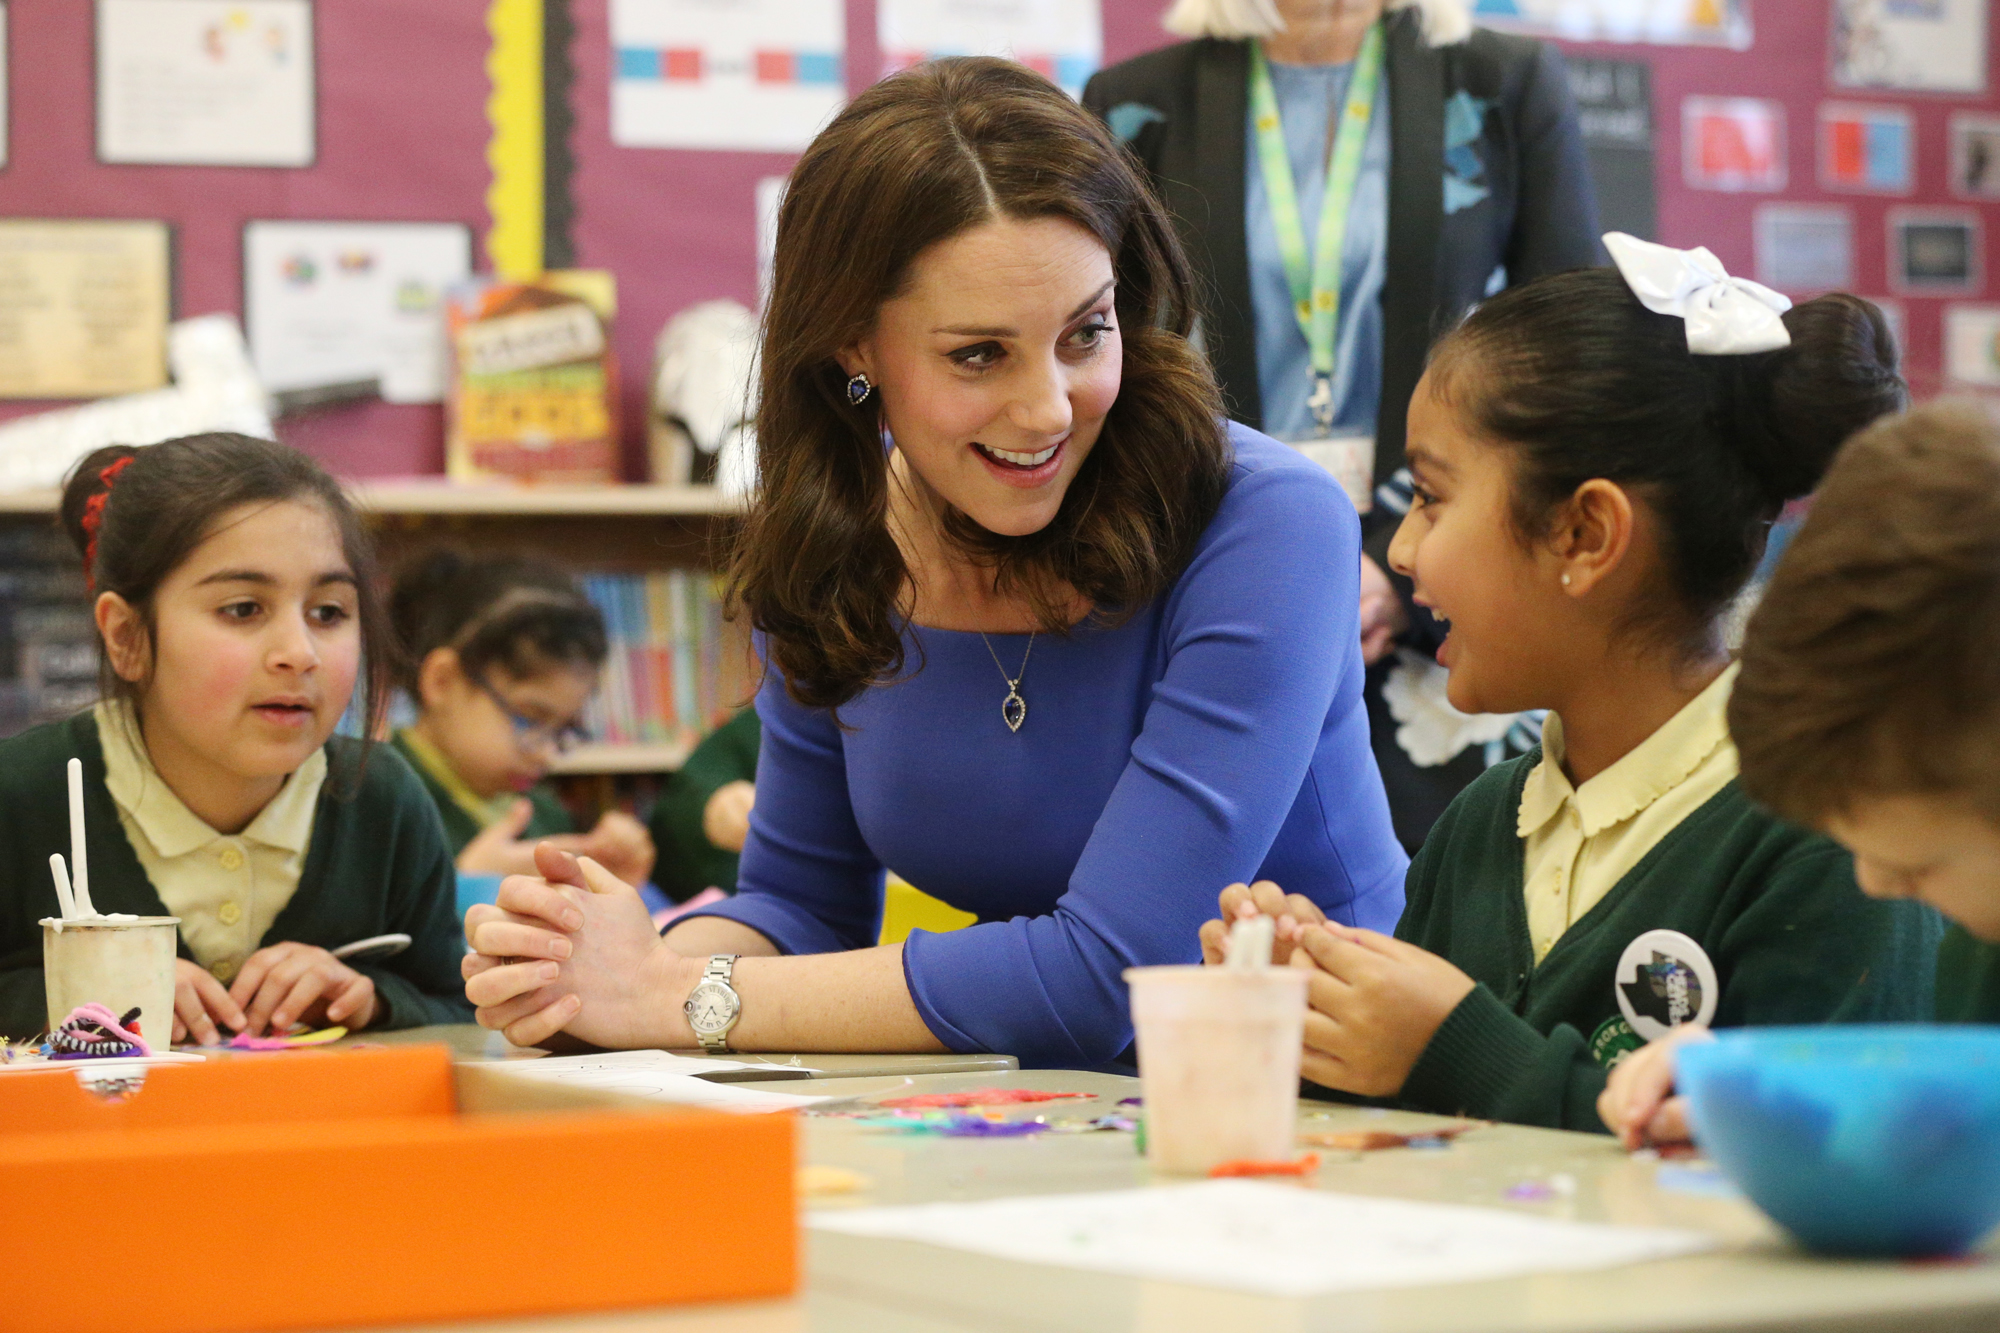 The Duchess Of Cambridge Launches Mental Health Programme For Schools